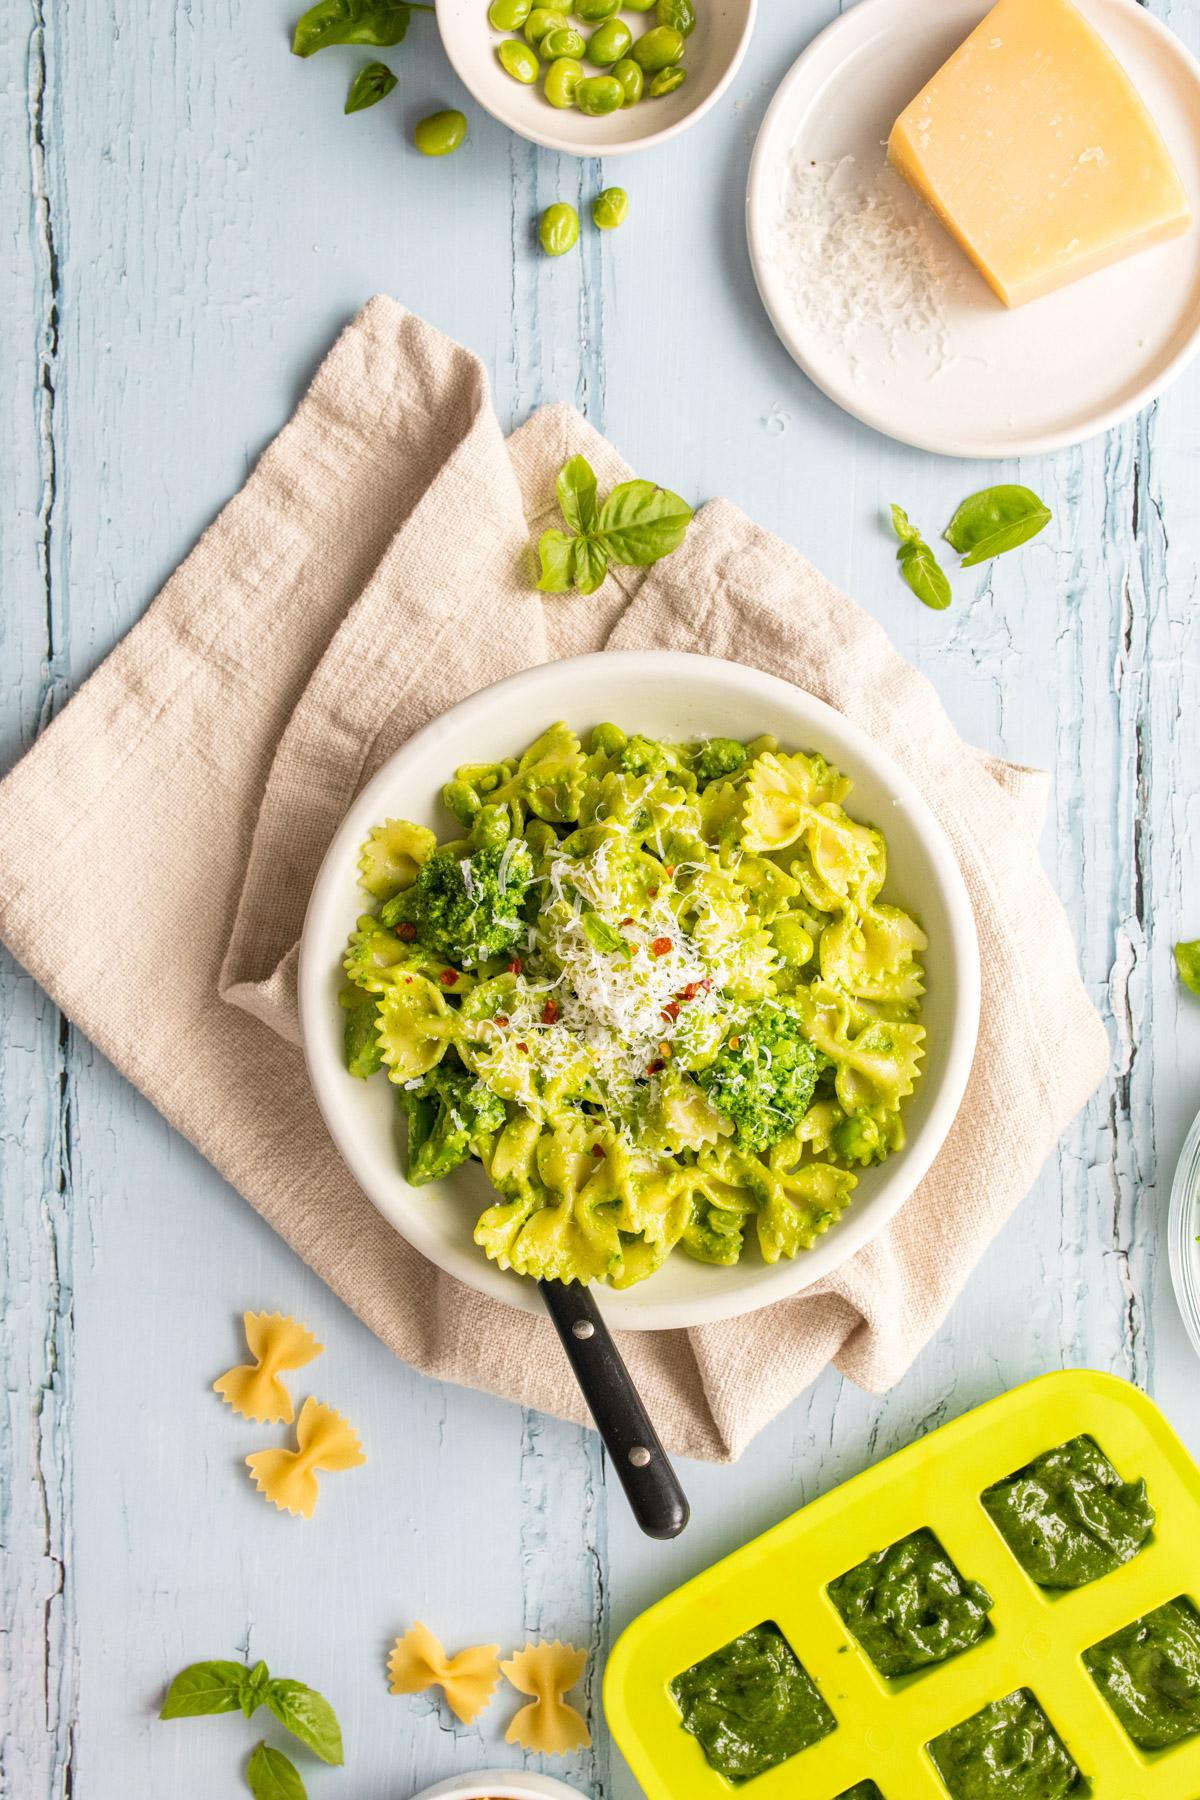 bowtie pasta with pesto in a white bowl with ingredients on table